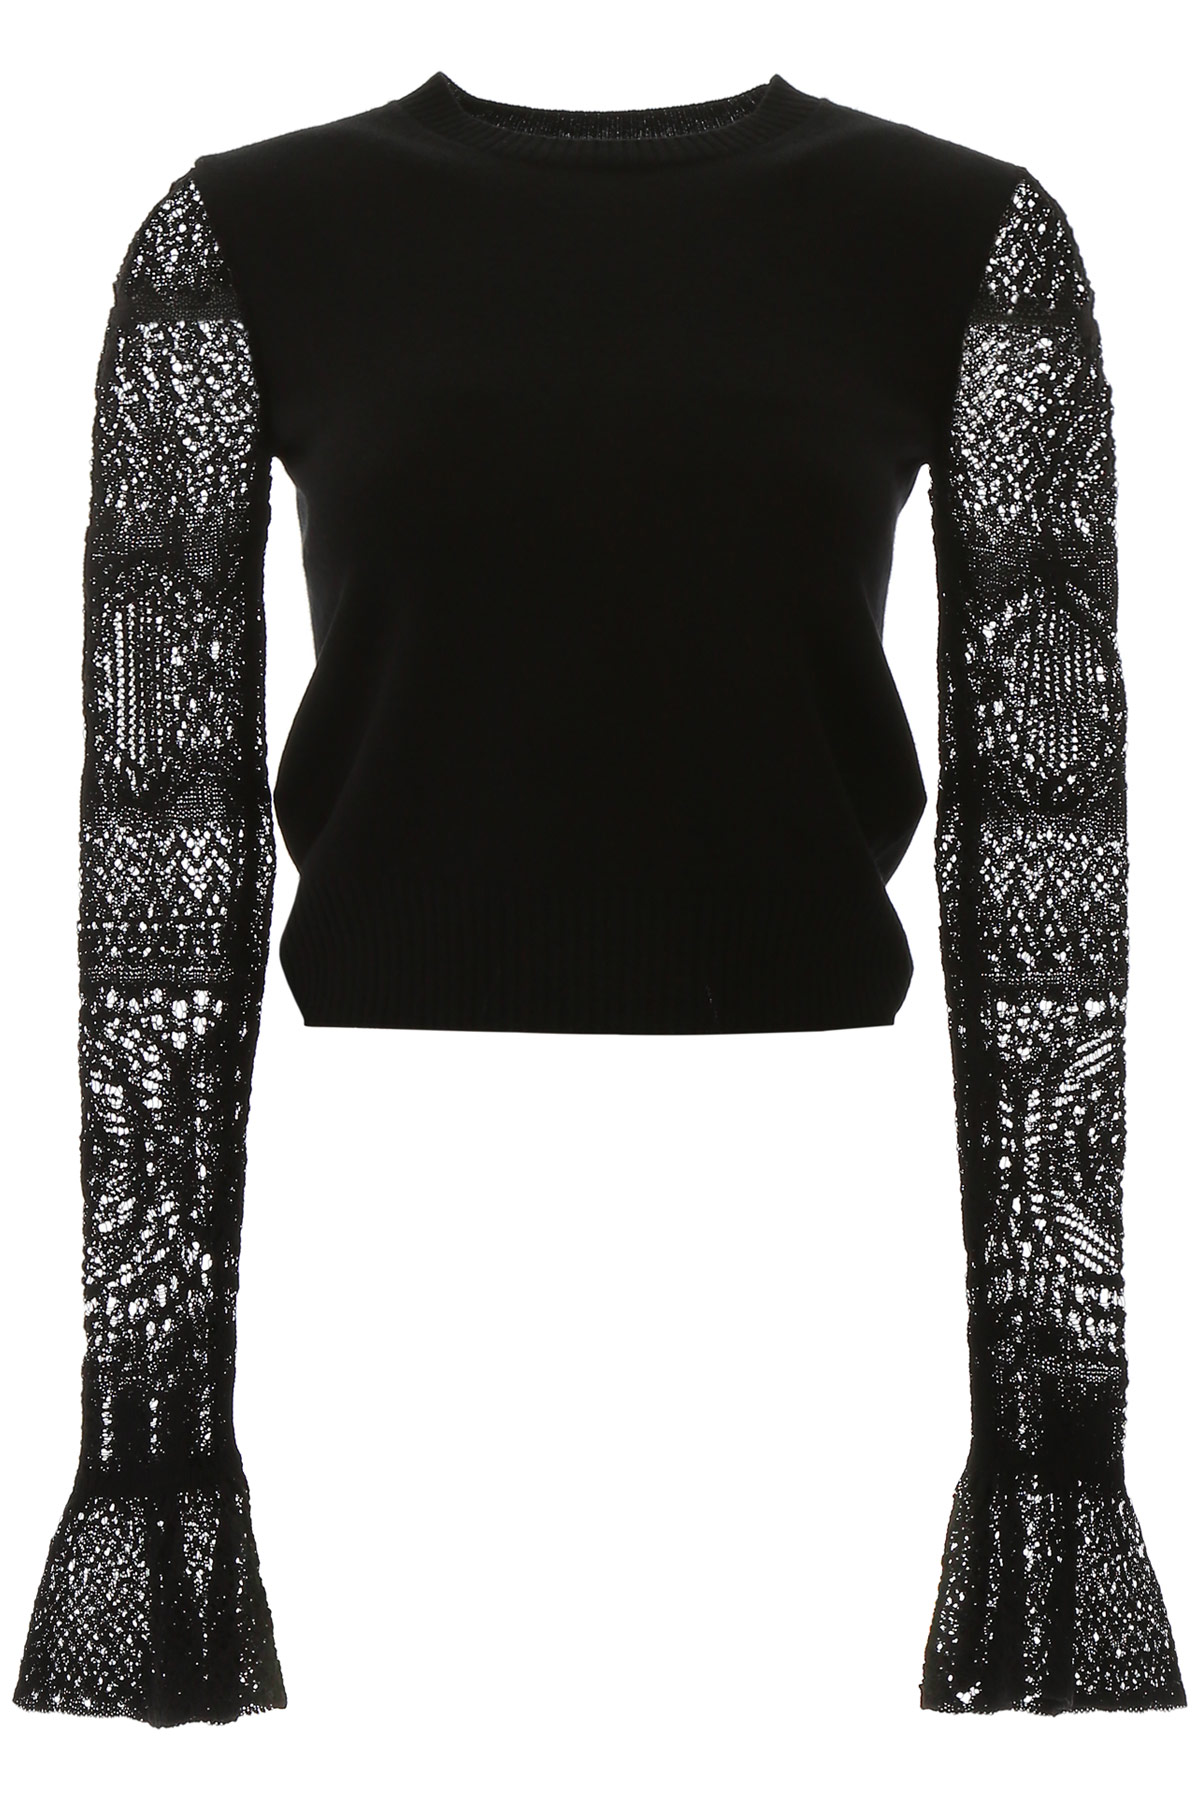 ALEXANDER MCQUEEN PULLOVER WITH CROCHET SLEEVES M Black Wool, Cotton